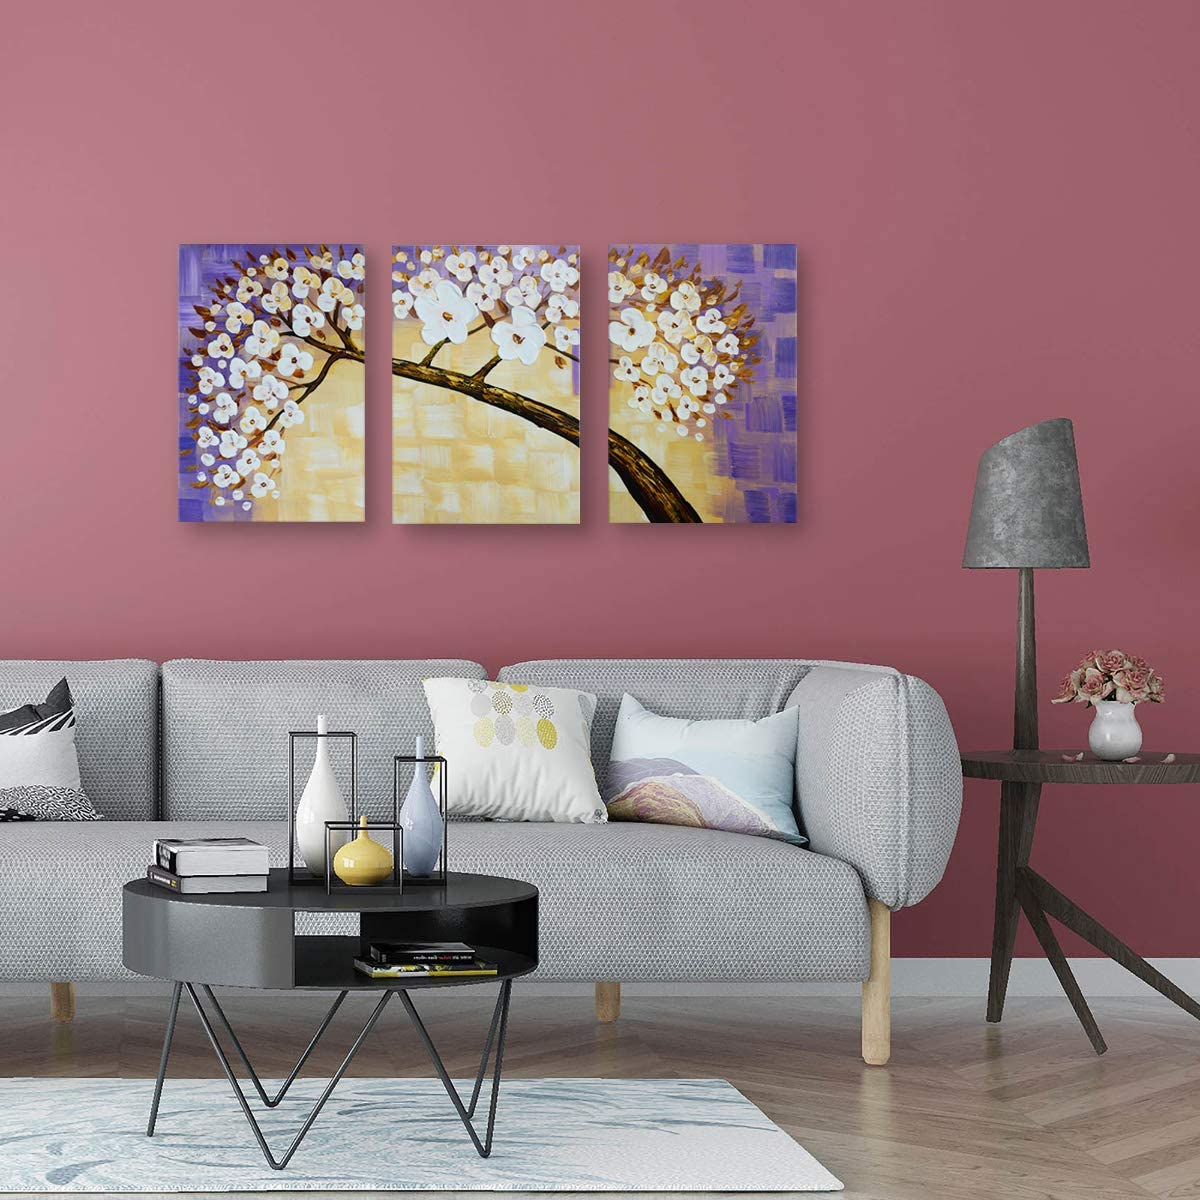 Mon Art Tree Blossom Oil Painting White Purple Flower Hand Painted Watercolor Picture Wall Art Handmade Drawing Artwork for Bedroom Living Room Modern Decoration Home Decor 16x24x3Pcs,Framed,Large